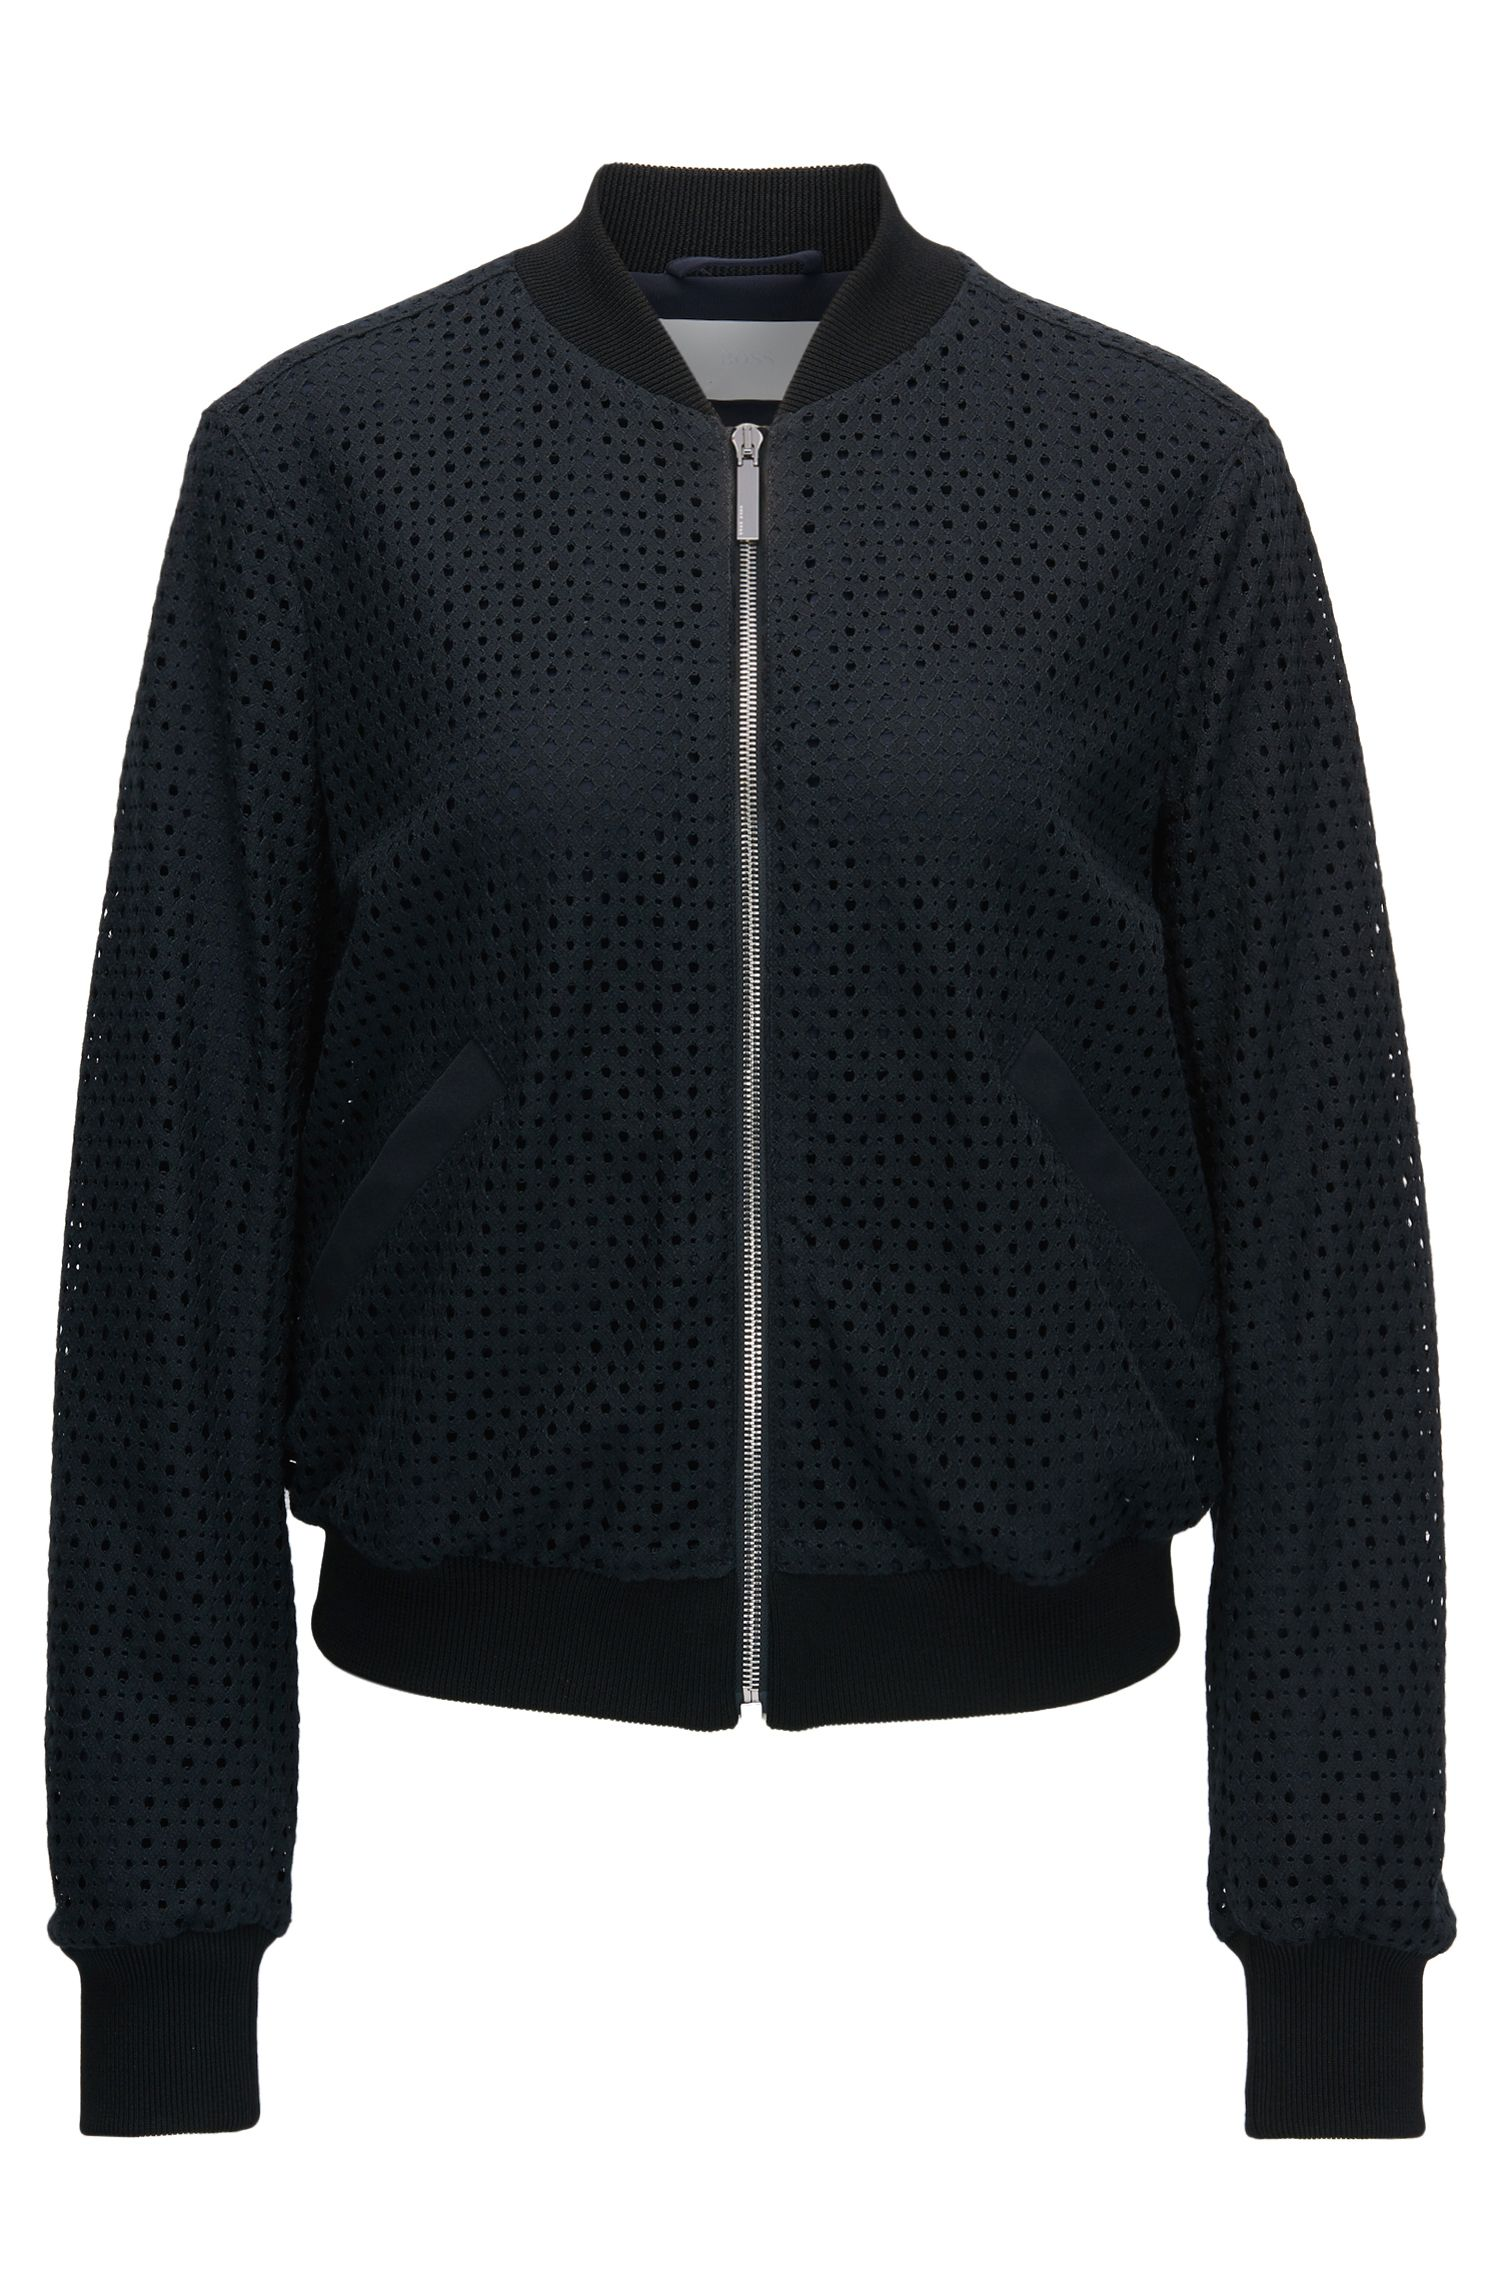 Modern bomber jacket in lace